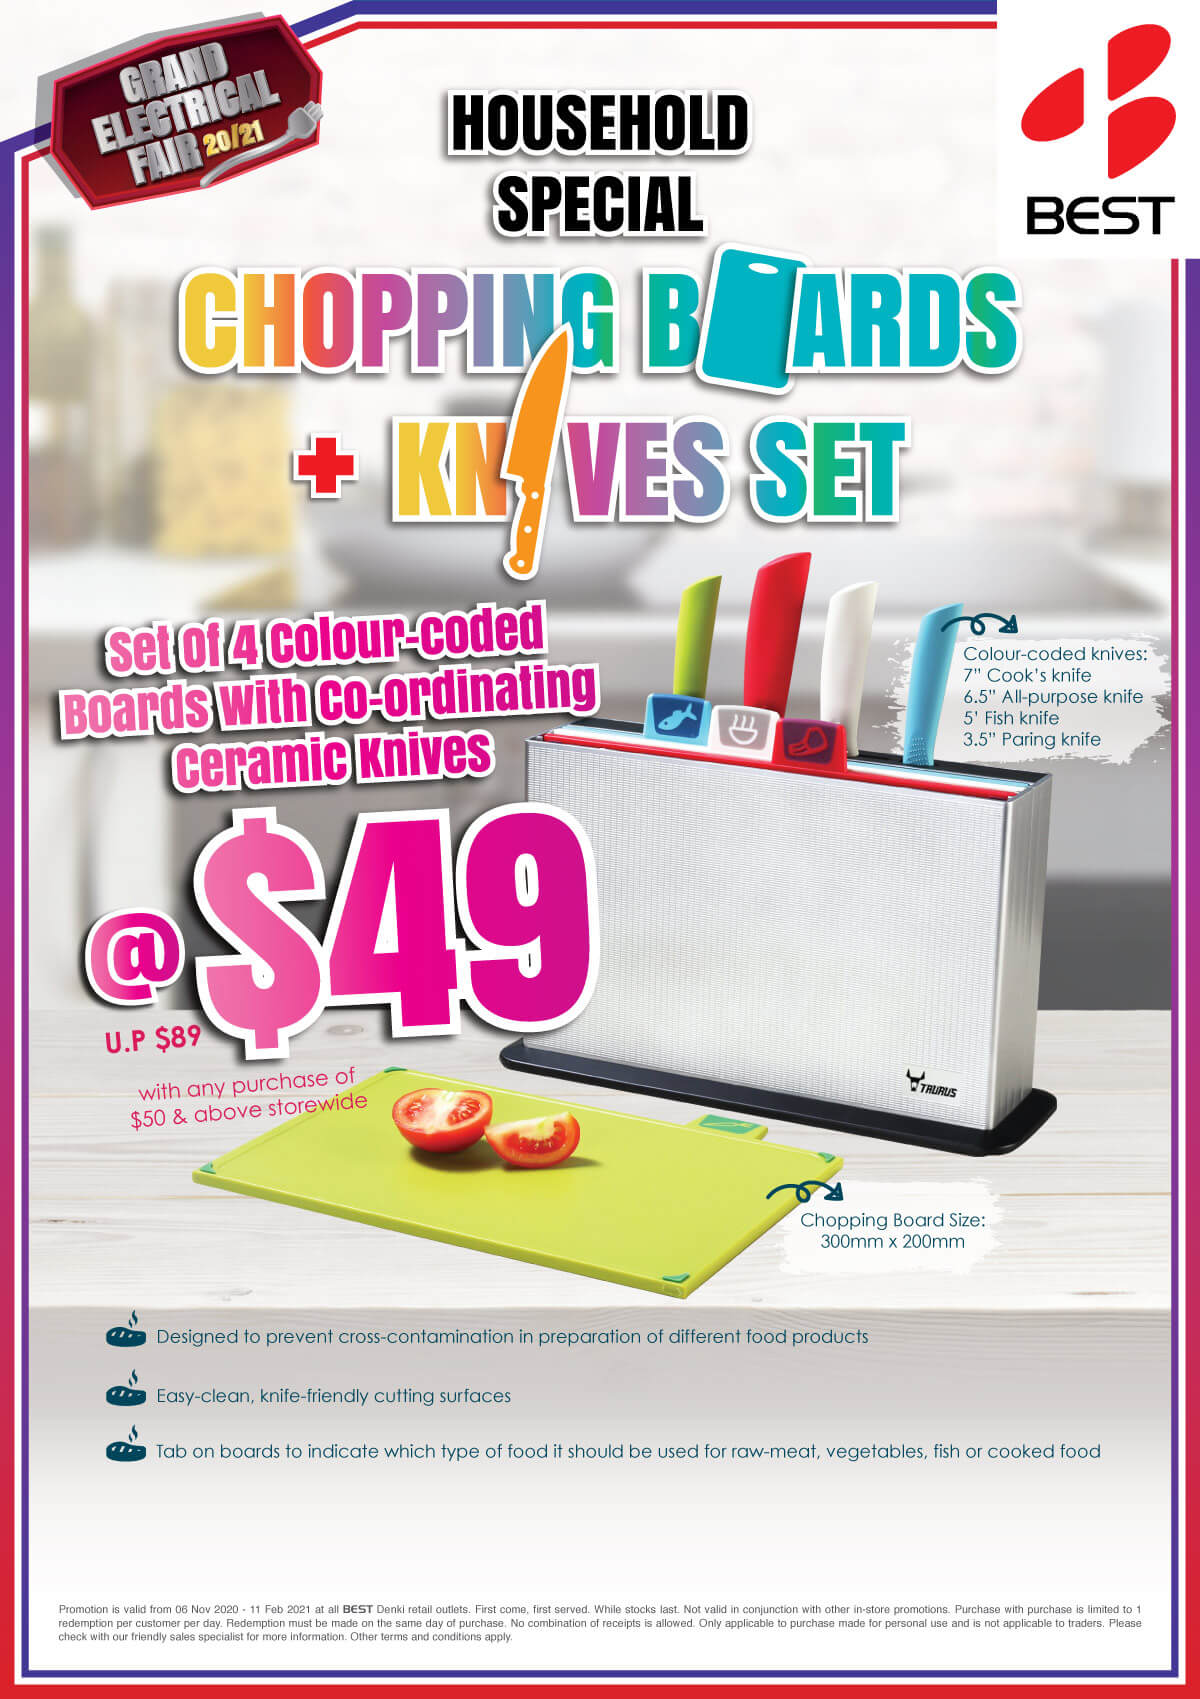 Best Denki Household Special Chopping Board and Knives Set at $49 with any purchase of $50 and above storewide